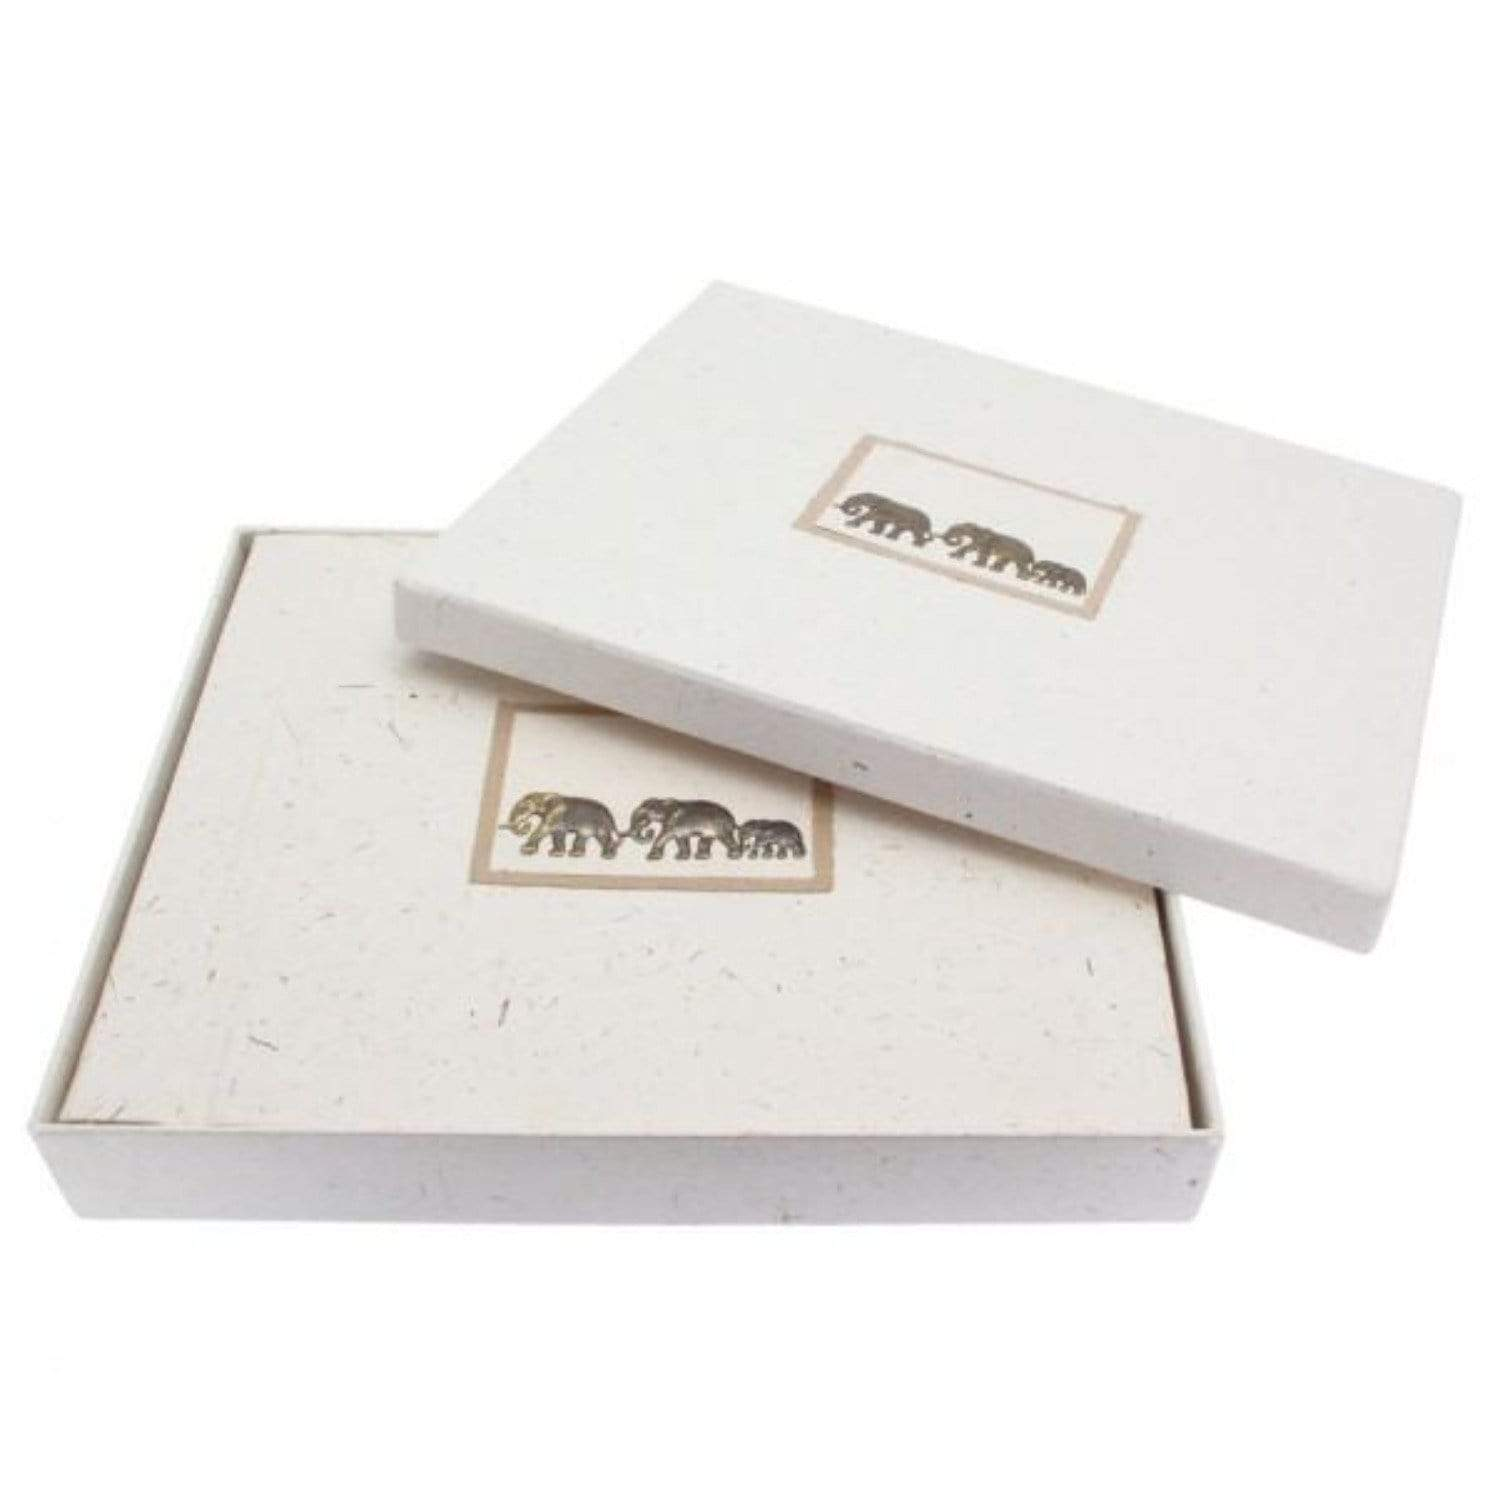 sustainable gifts Paper High Elephant dung photo album L